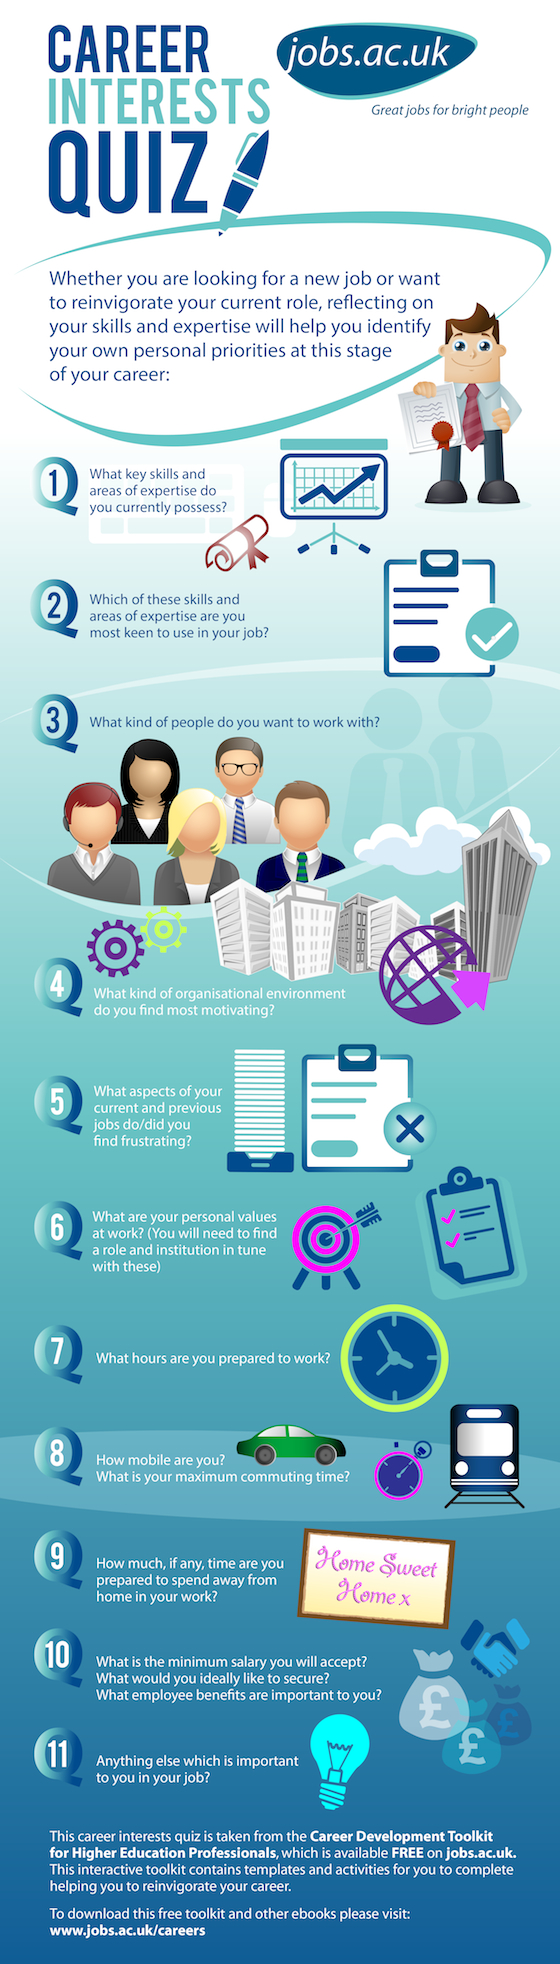 interests quiz infographic career interests quiz infographic